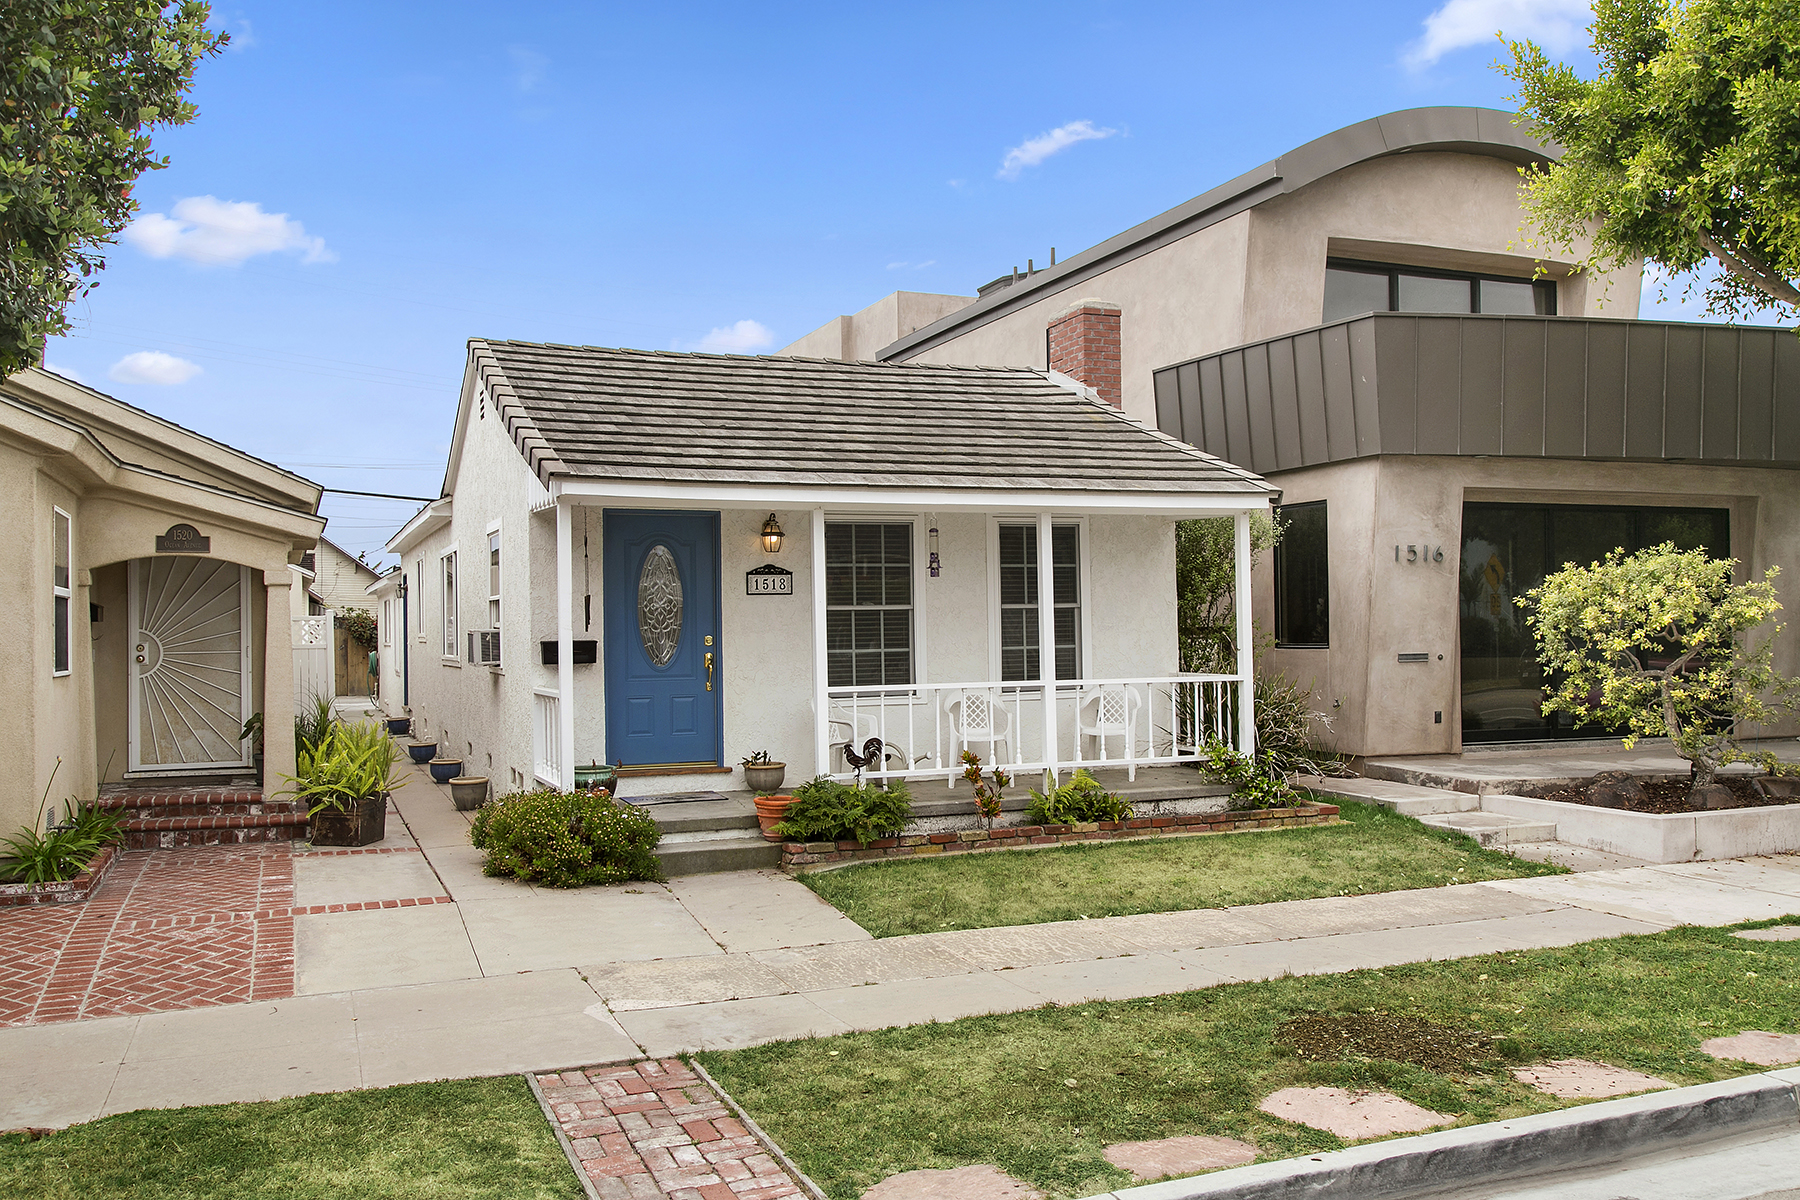 Single Family Home for Sale at 1518 Ocean Avenue Seal Beach, California 90740 United States